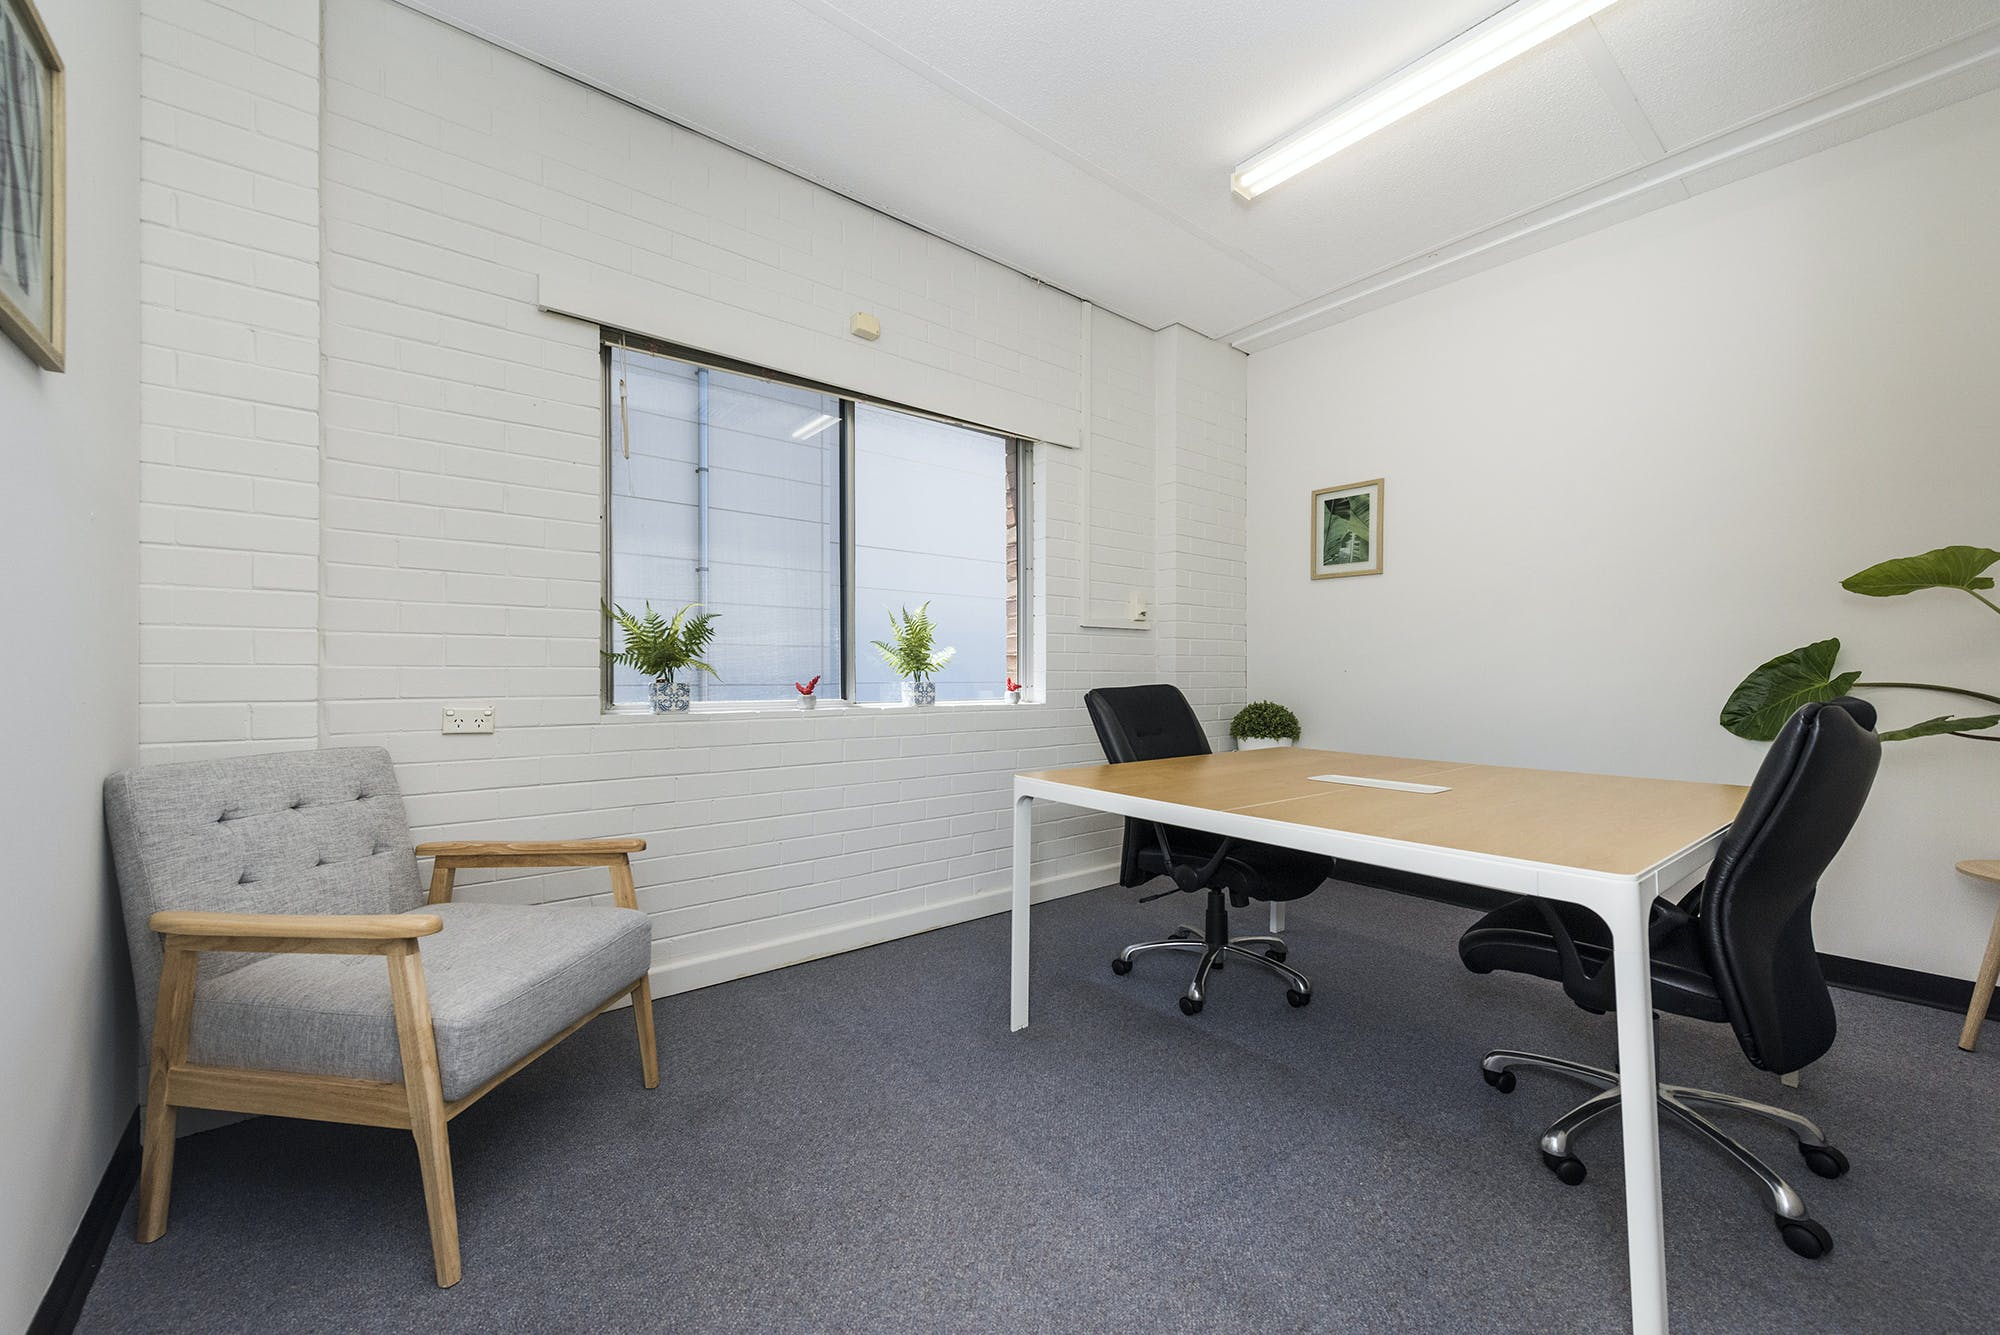 Urbhans Room, private office at Studio 64 - Workspace with Childcare, image 1